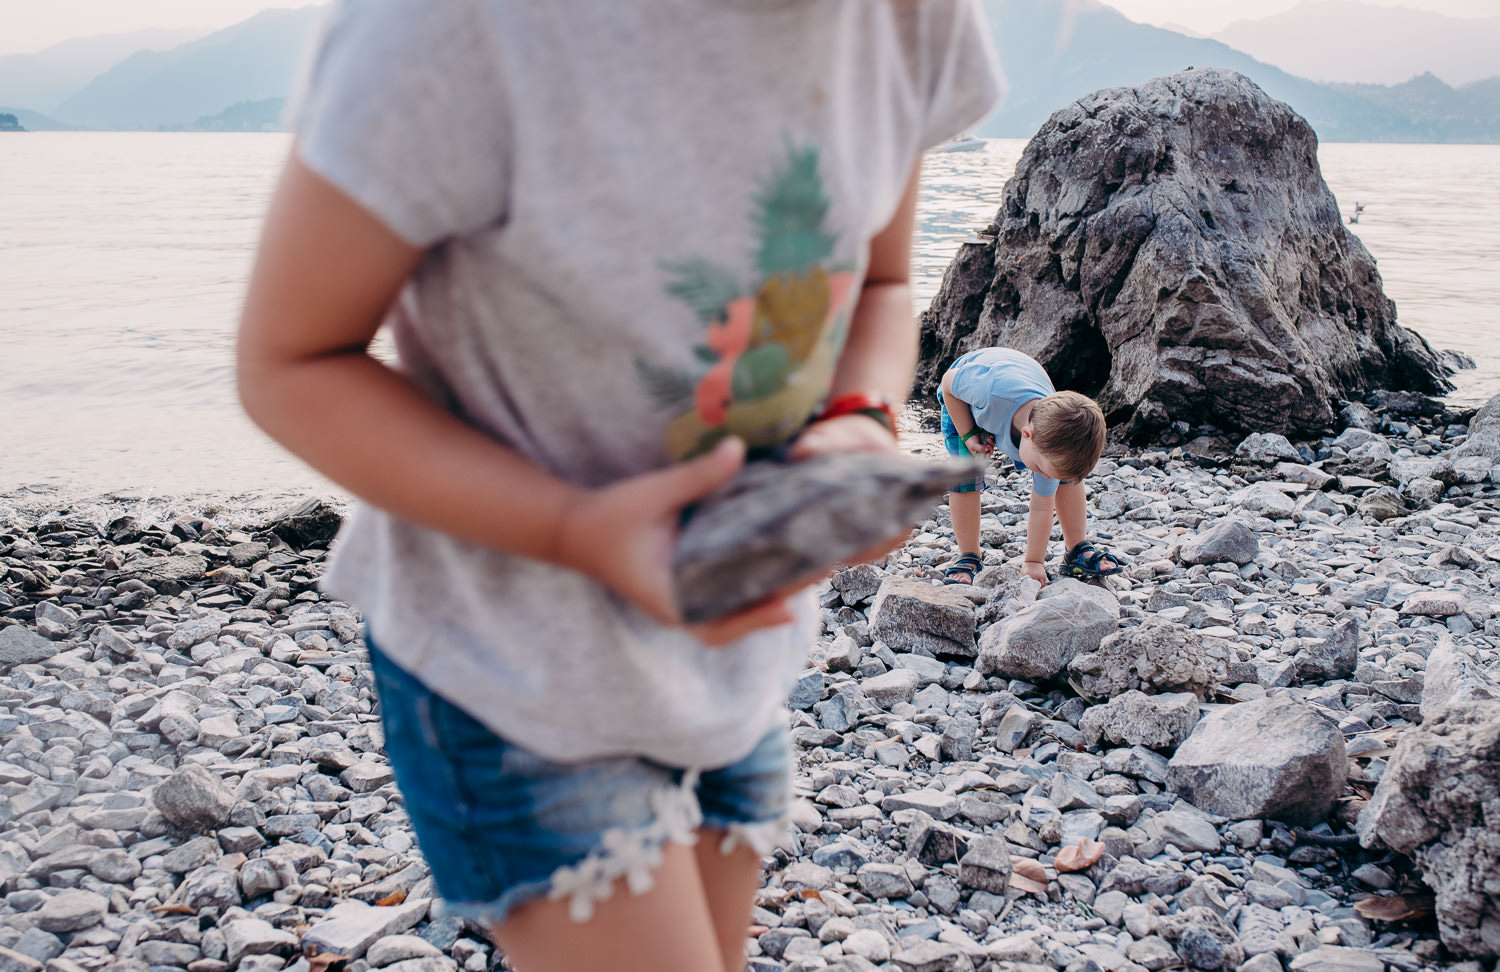 Rocks - The moment :My children on holiday just started gathering rocks and moving them around the beach. This is so